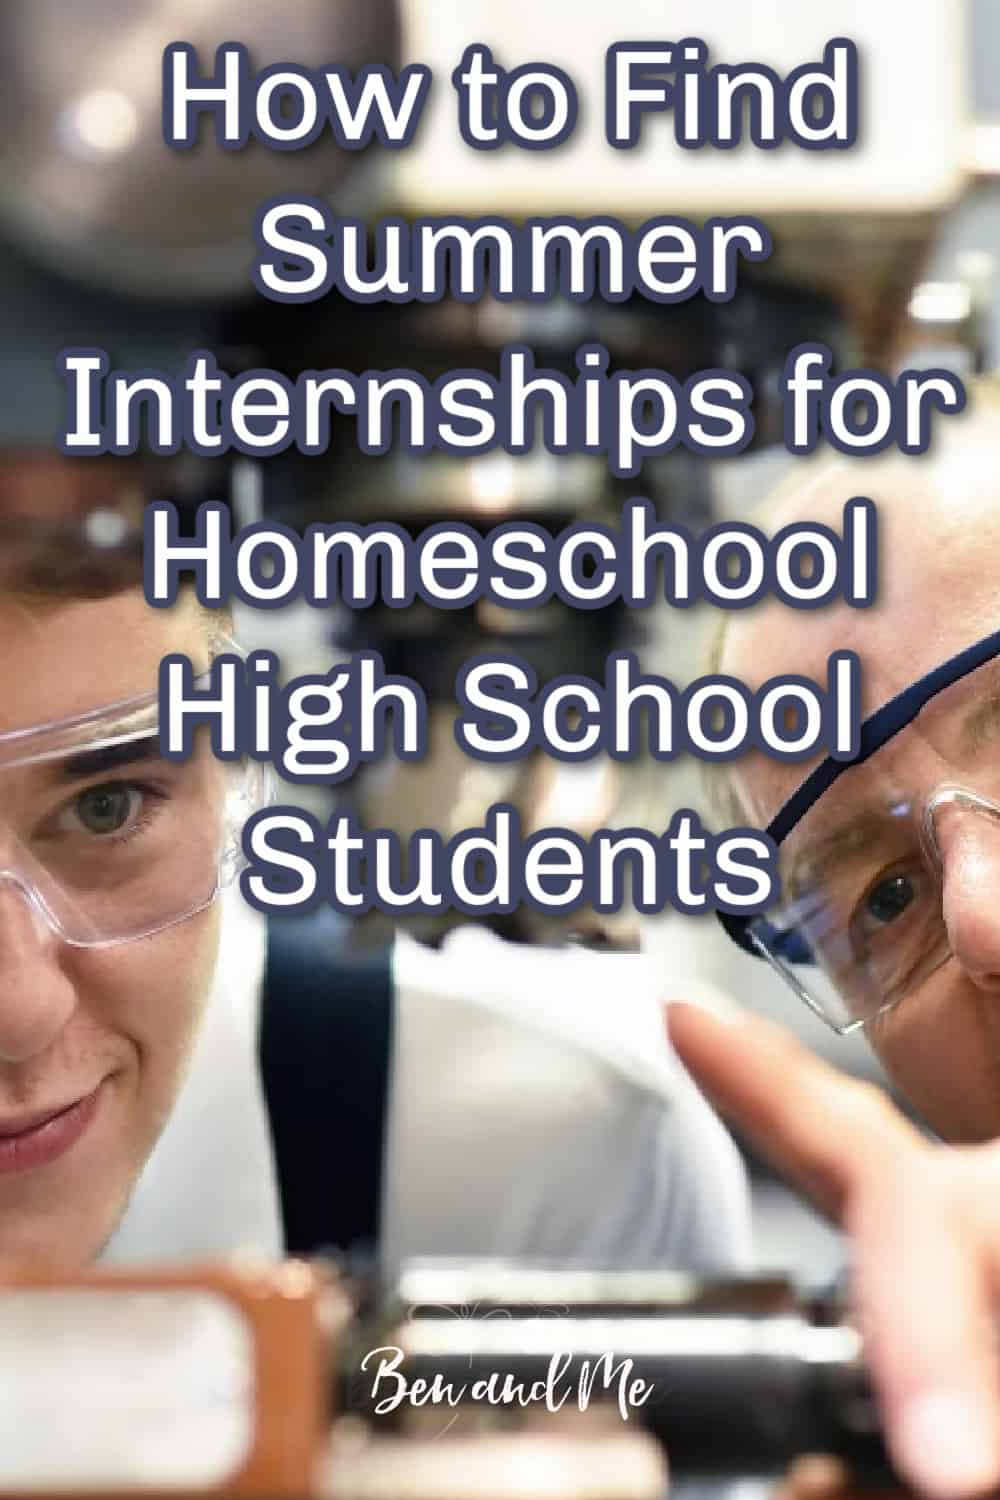 Learn how to find summer internships for your homeschool high school student and how they can benefit your teen. #homeschool #homeschoolhighschool #highschoolinternships #summerjobsforteens